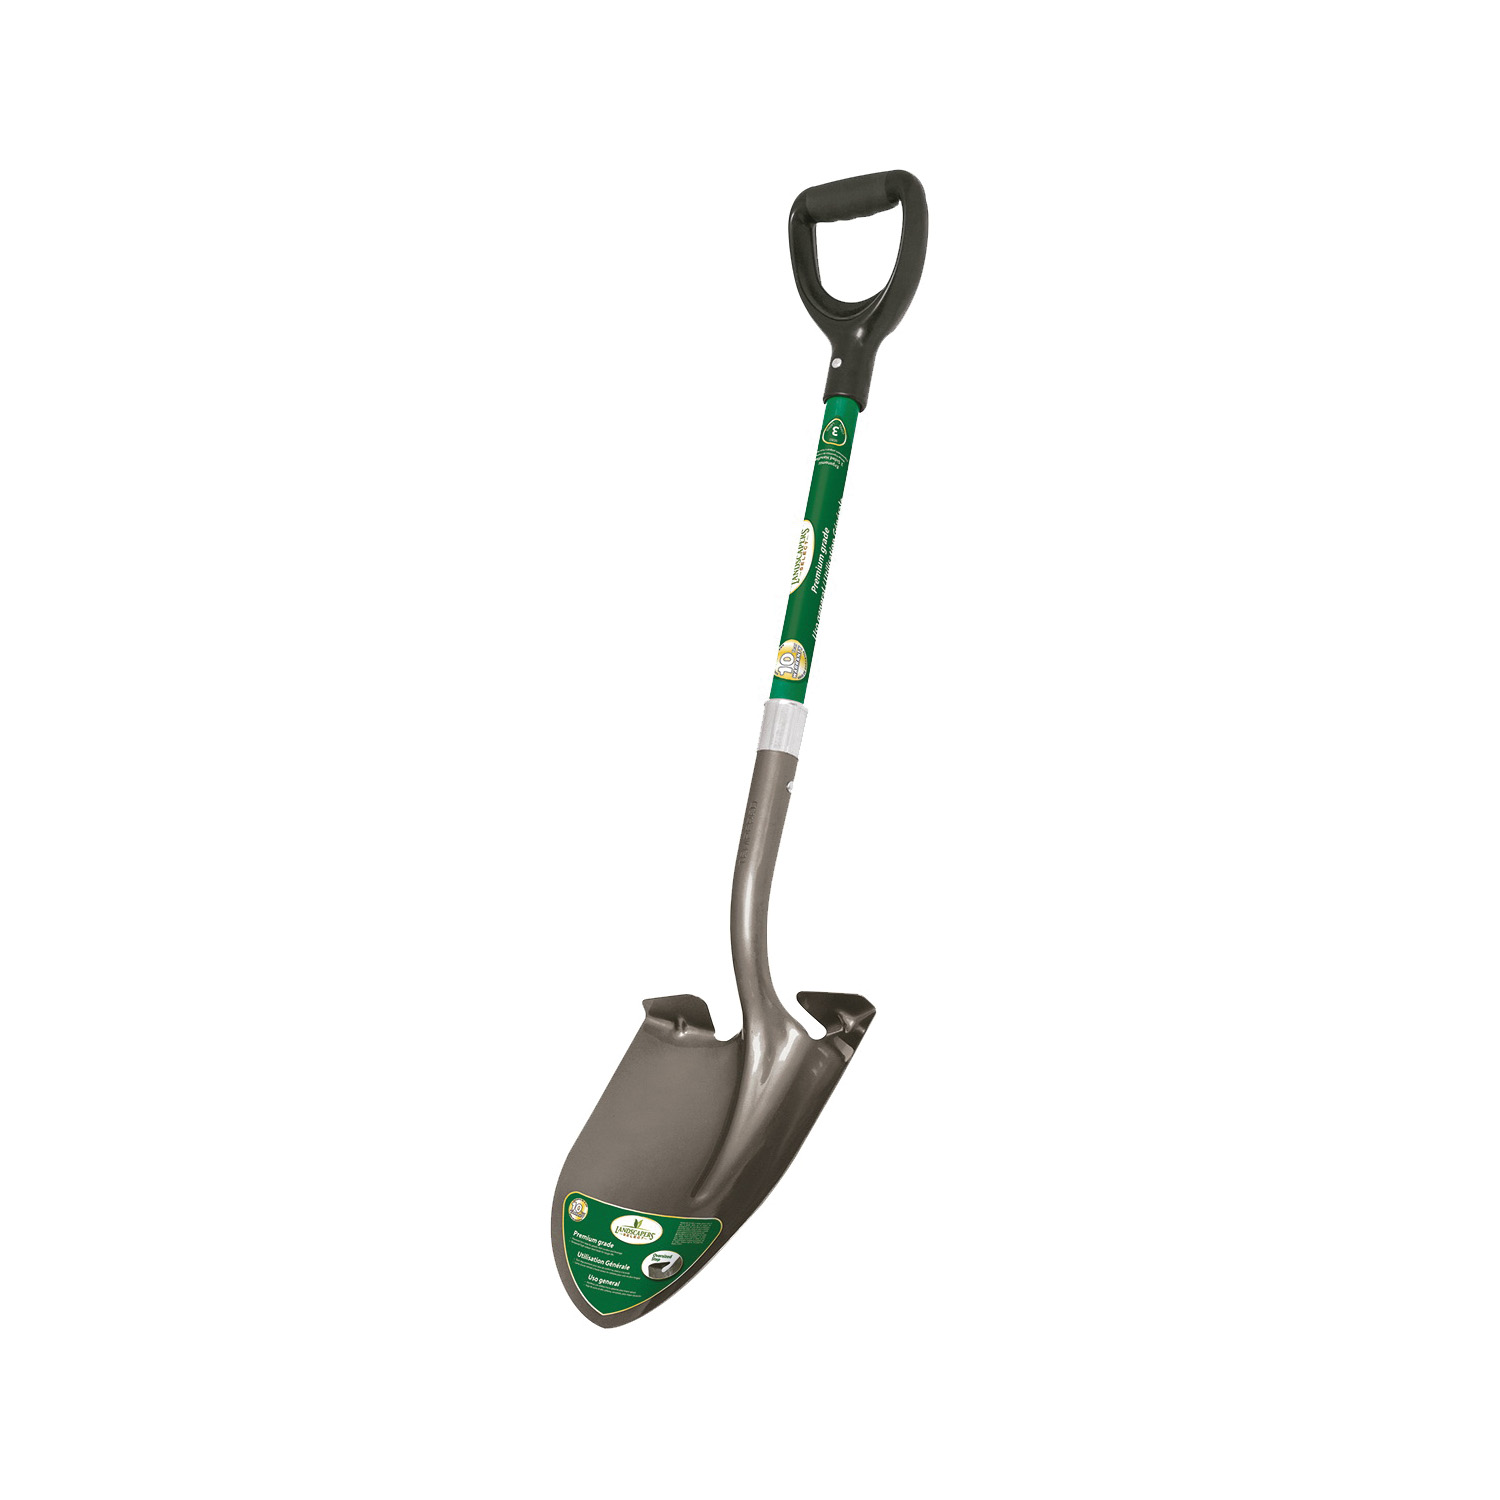 Picture of Landscapers Select 34599 Digging Shovel, Steel Blade, Fiberglass Handle, D-Shaped Handle, 30 in L Handle